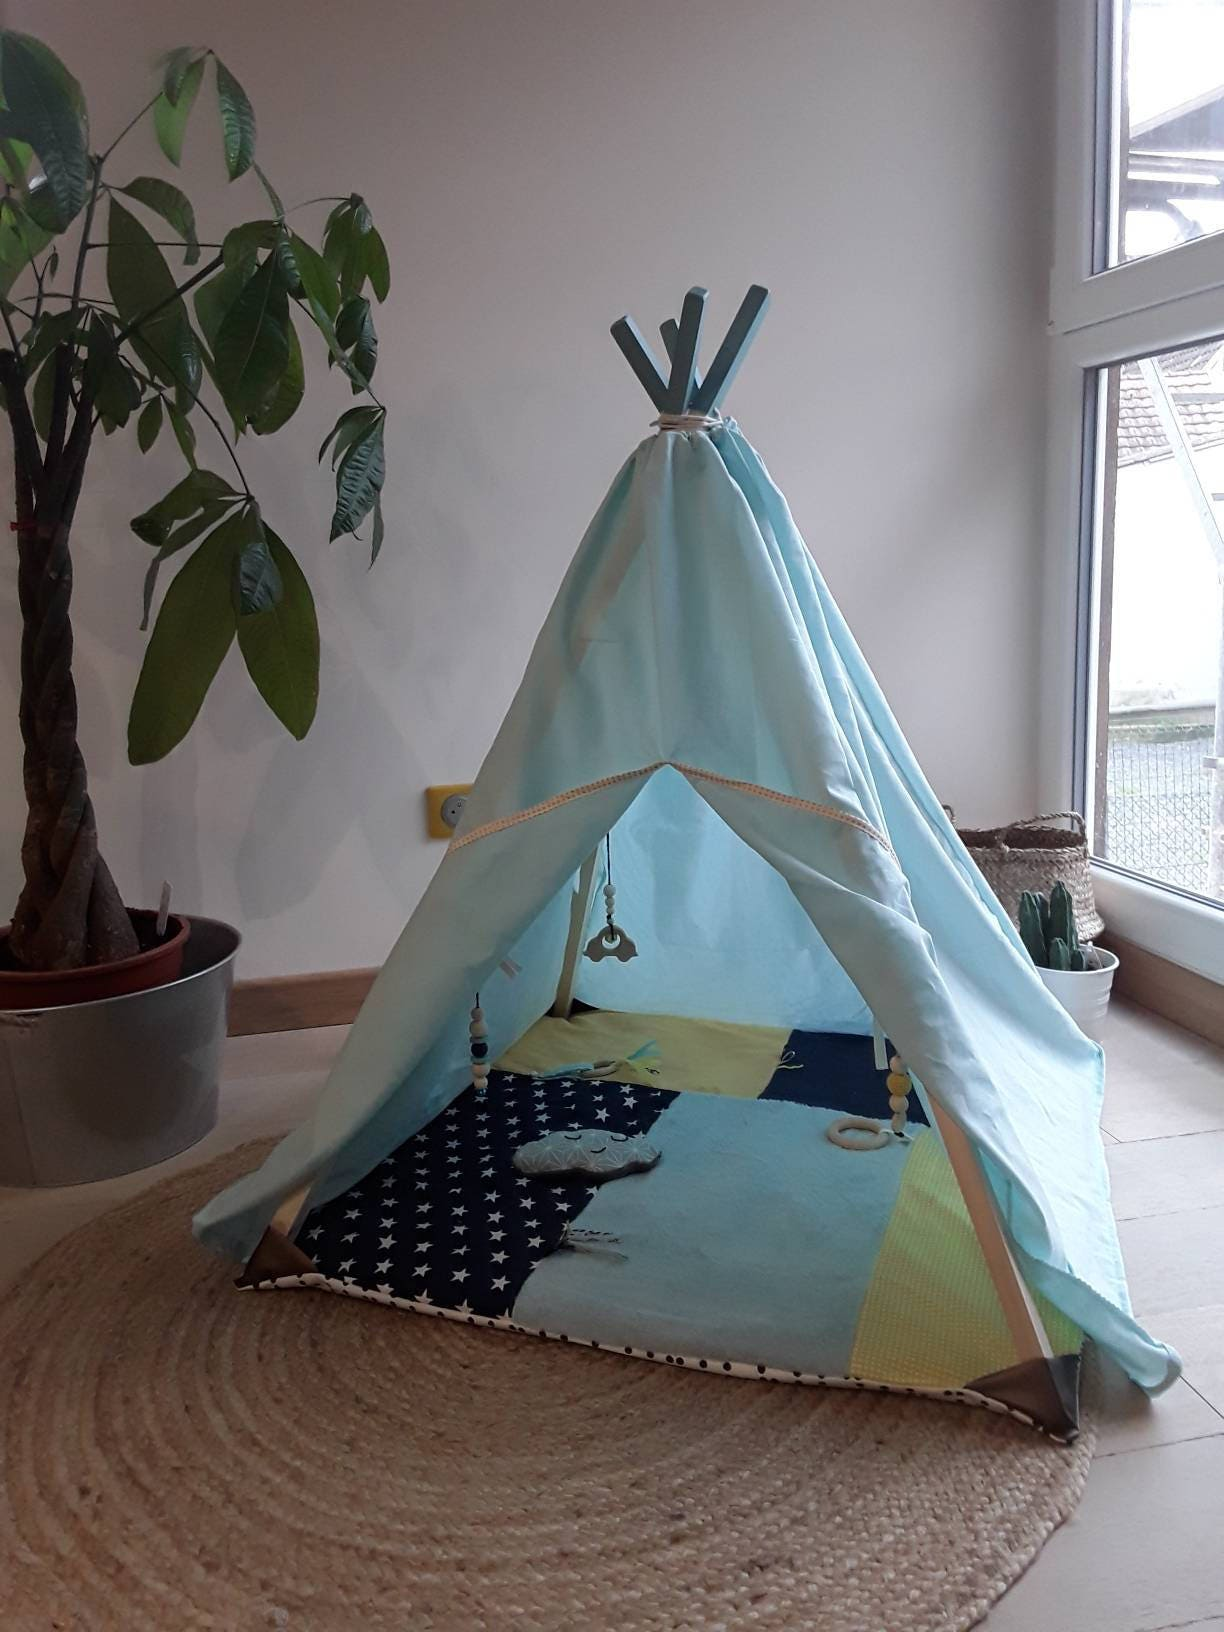 tapis d 39 veil b b gar on sensoriel transformable en tipi arche en bois brut hochets naturels. Black Bedroom Furniture Sets. Home Design Ideas